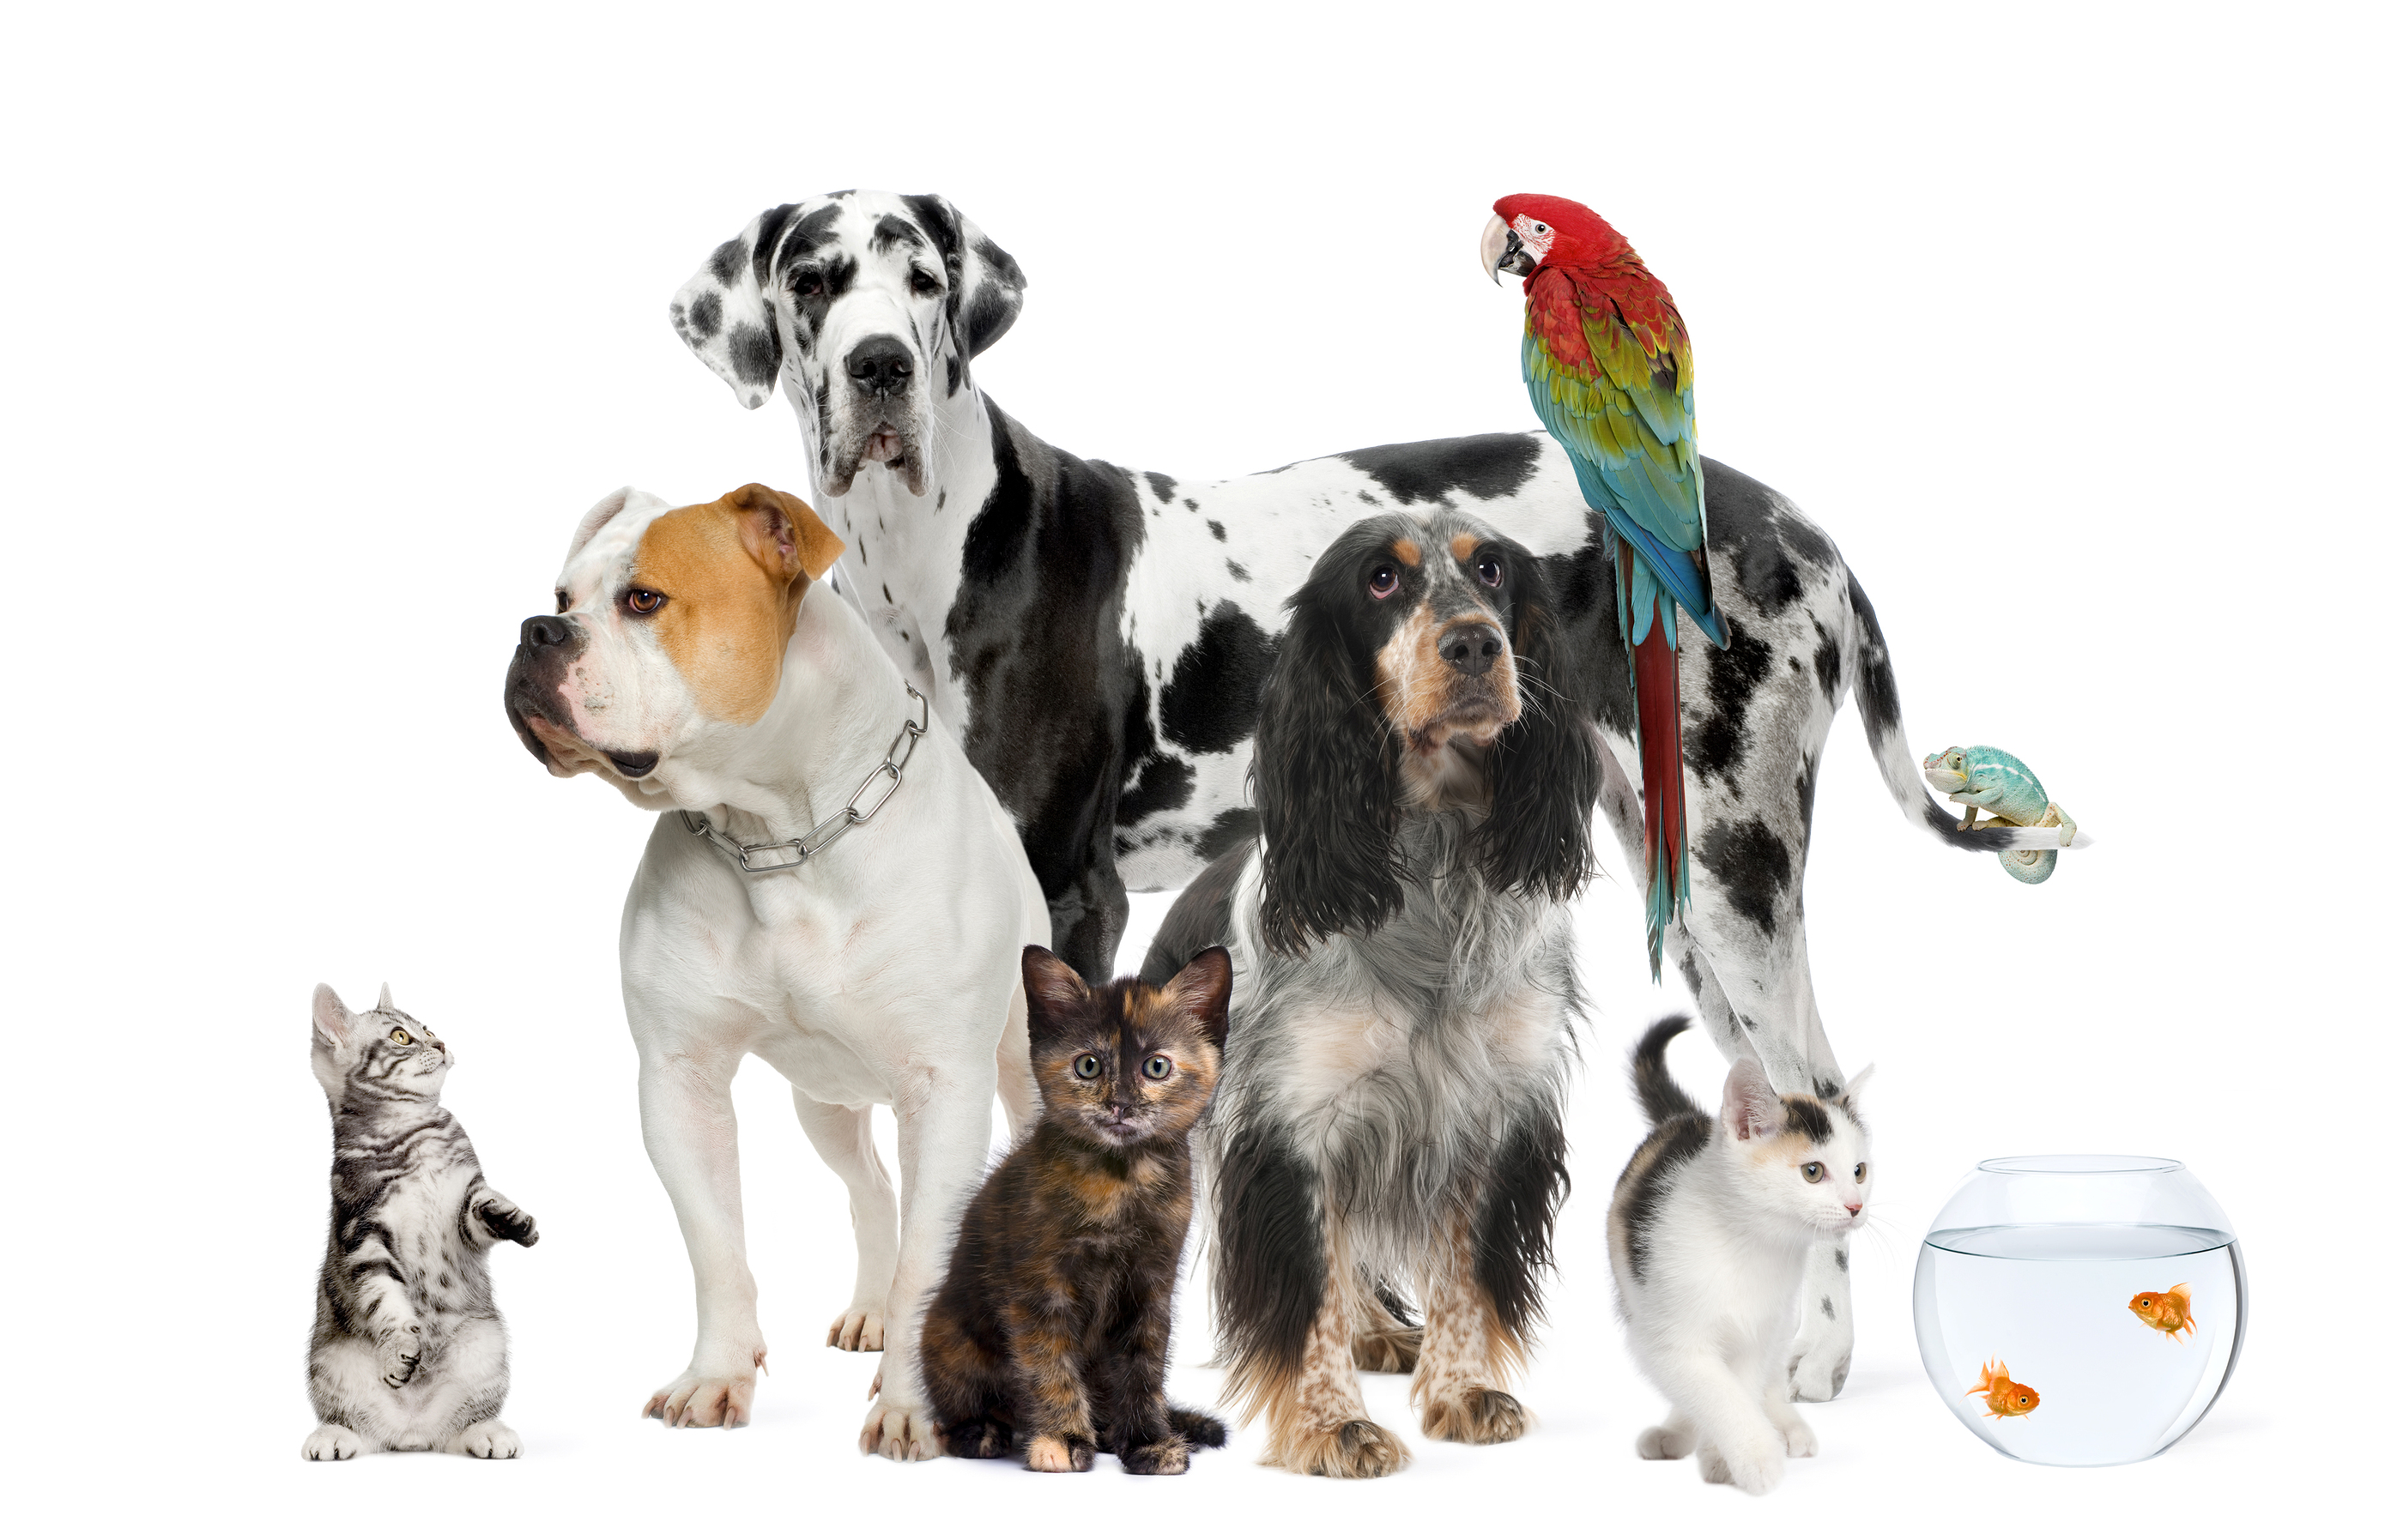 7 Steps to Ensure Proper Care of your Pets in an Emergency